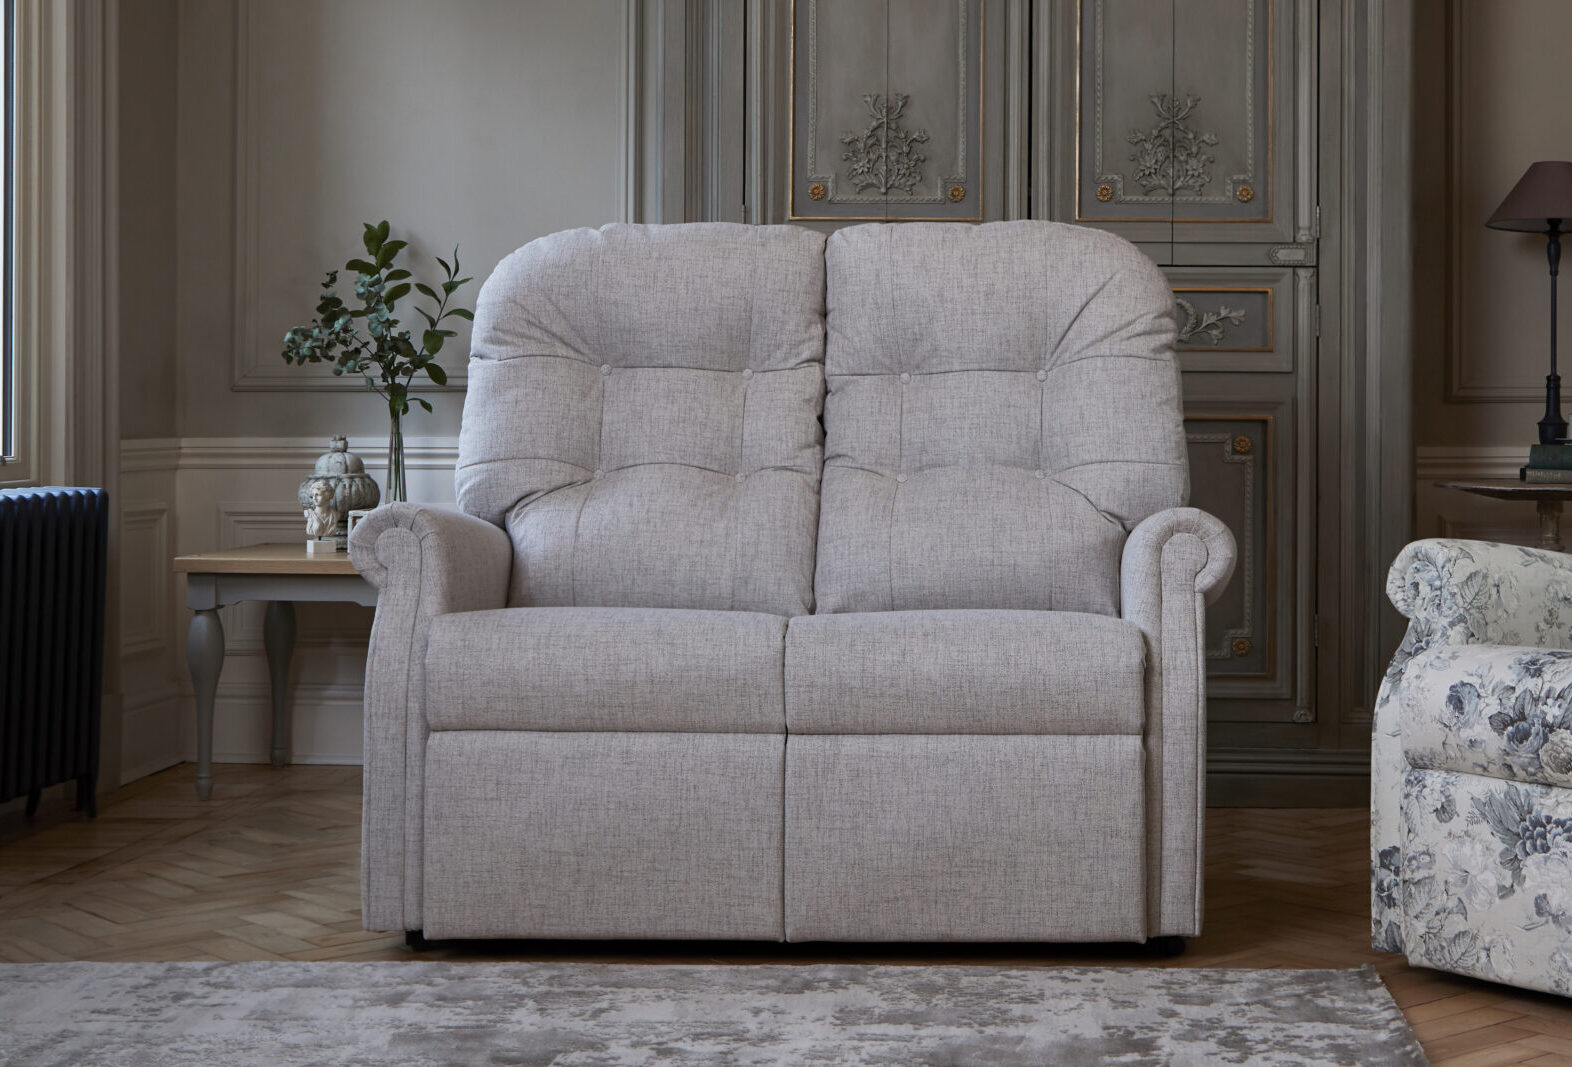 Bicester 2-Seater Sofa